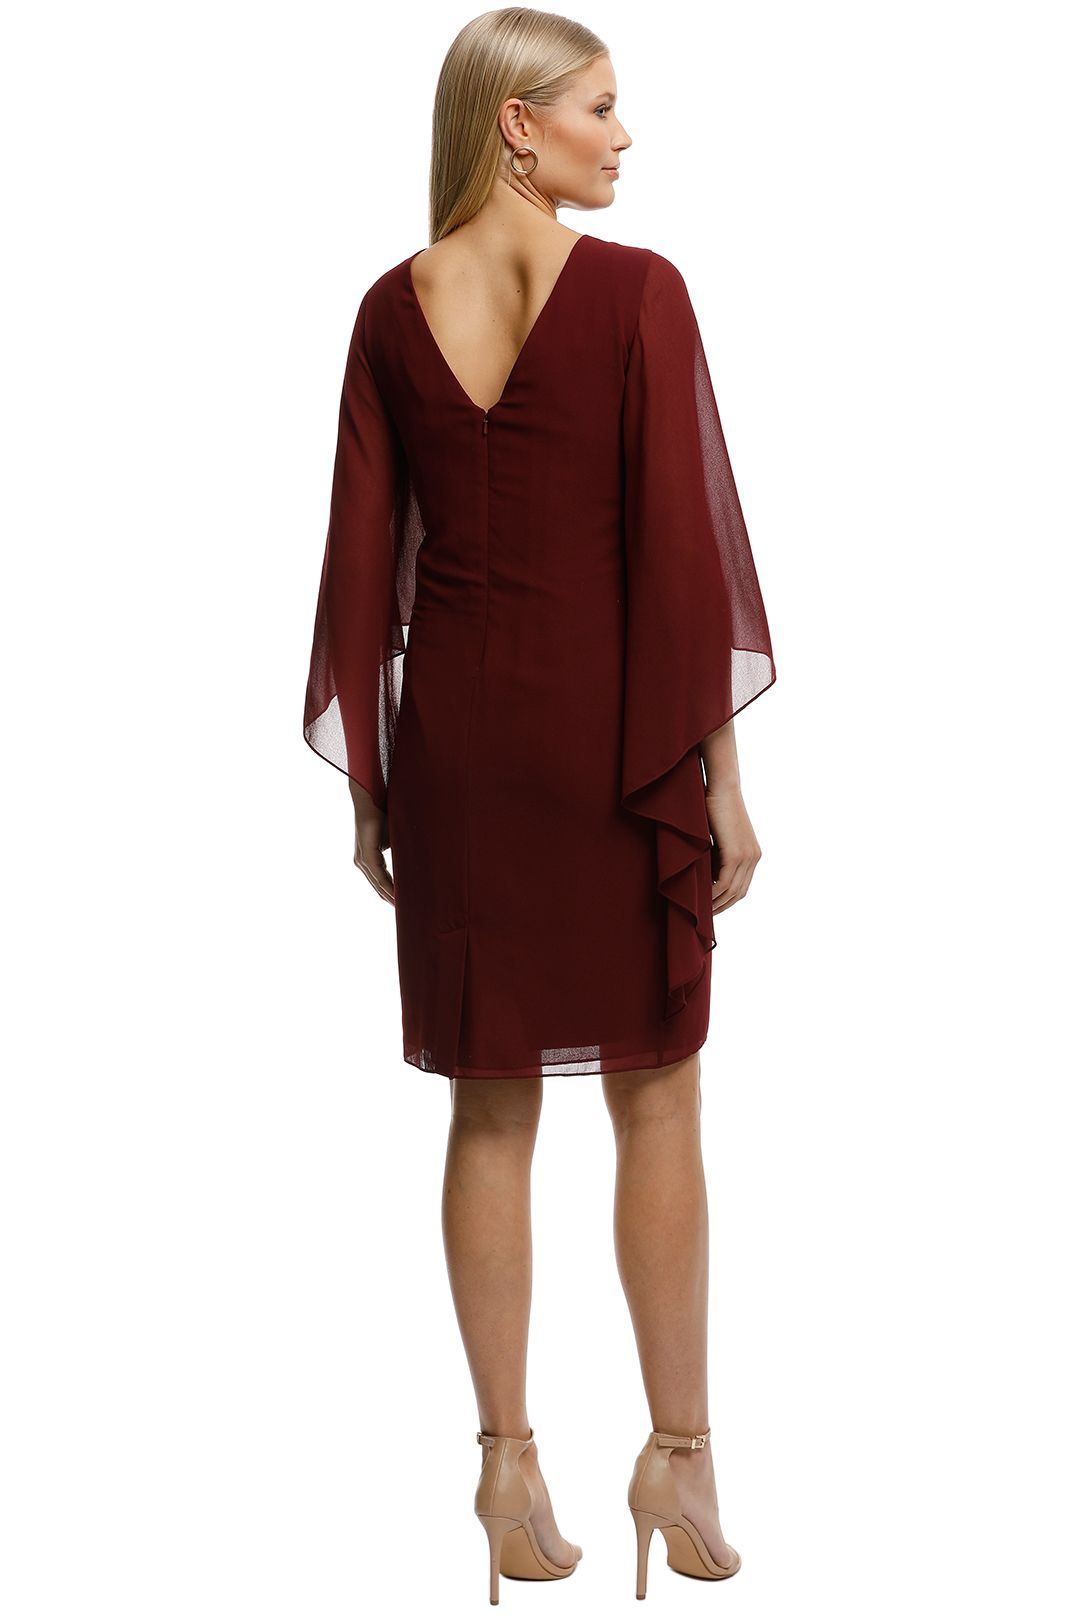 Montique-Ciana Cocktail Dress Wine-Wine-Back